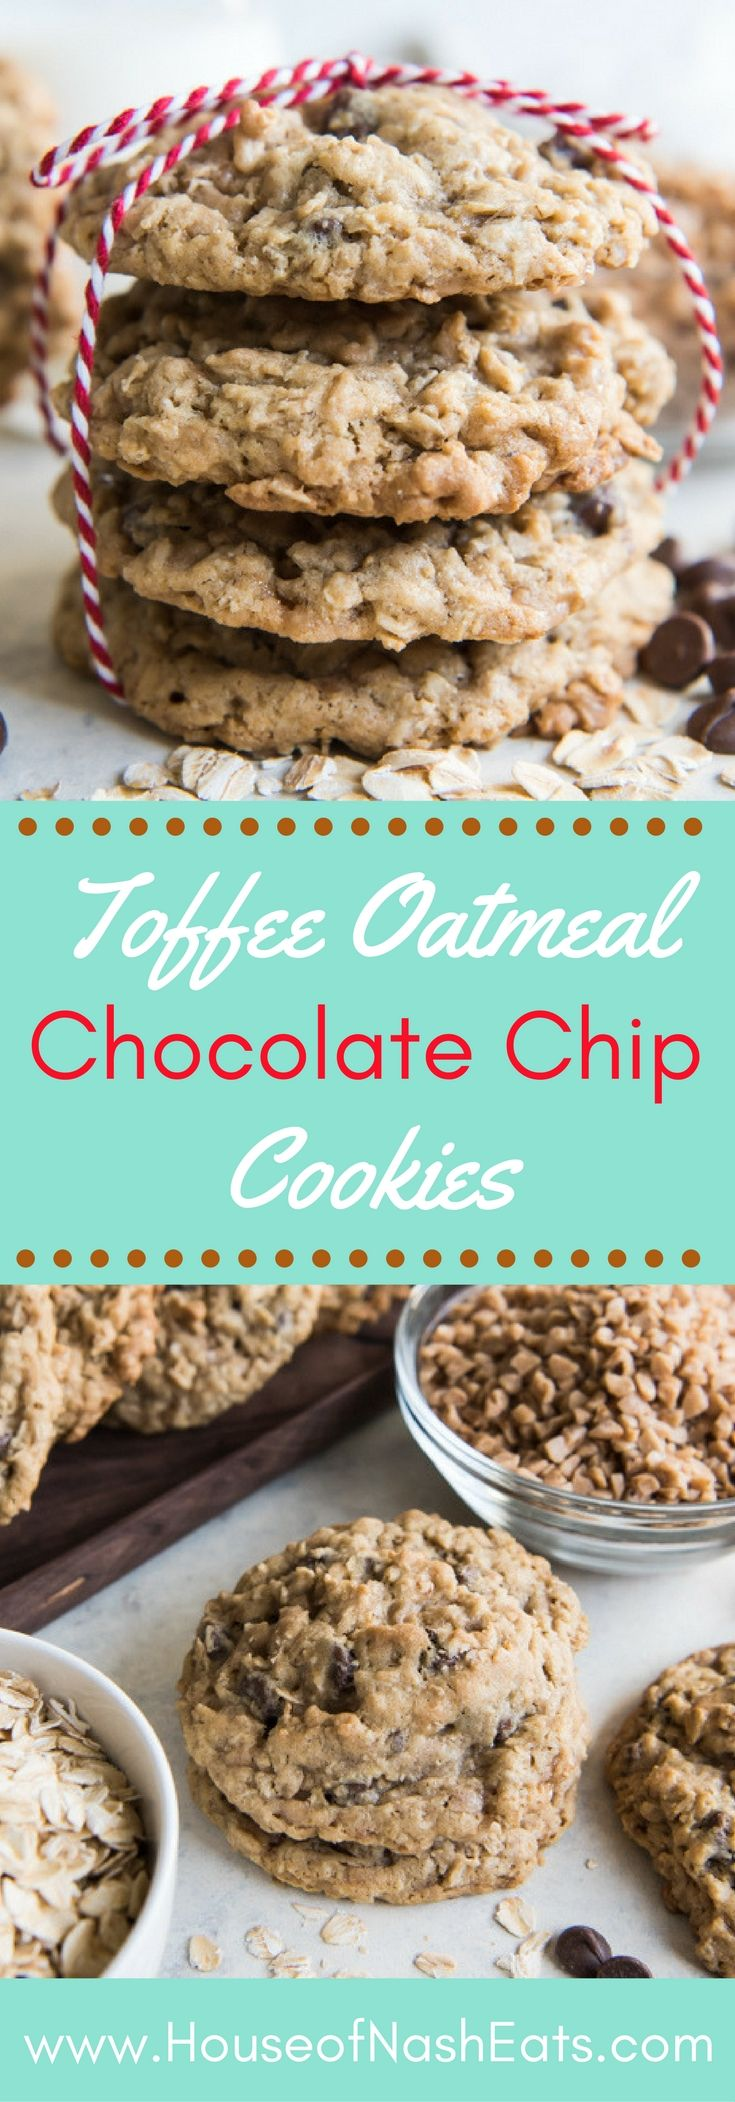 Toffee Oatmeal Chocolate Chip Cookies are hands down the best oatmeal cookie variation there is!Perfectly balanced flavors with caramelized toffee bits and milk chocolate.